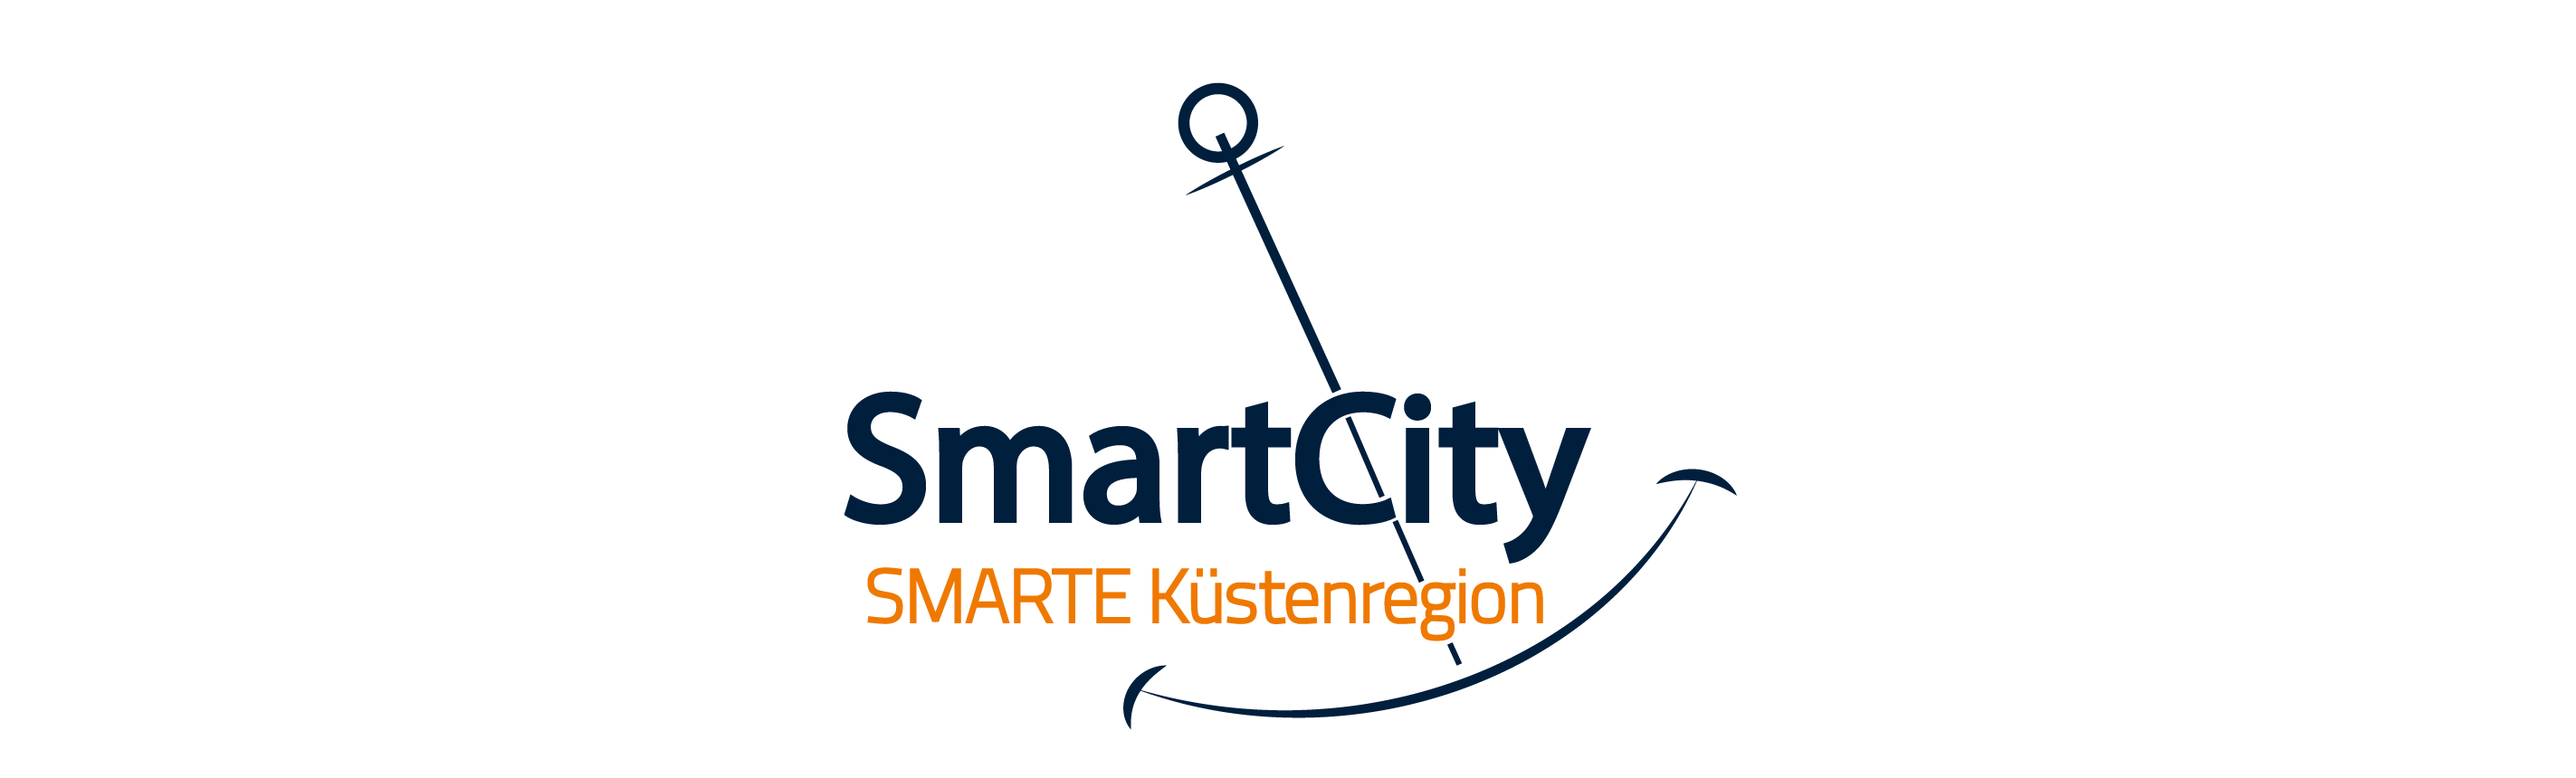 Logo Smart City - SMARTE Küstenregion